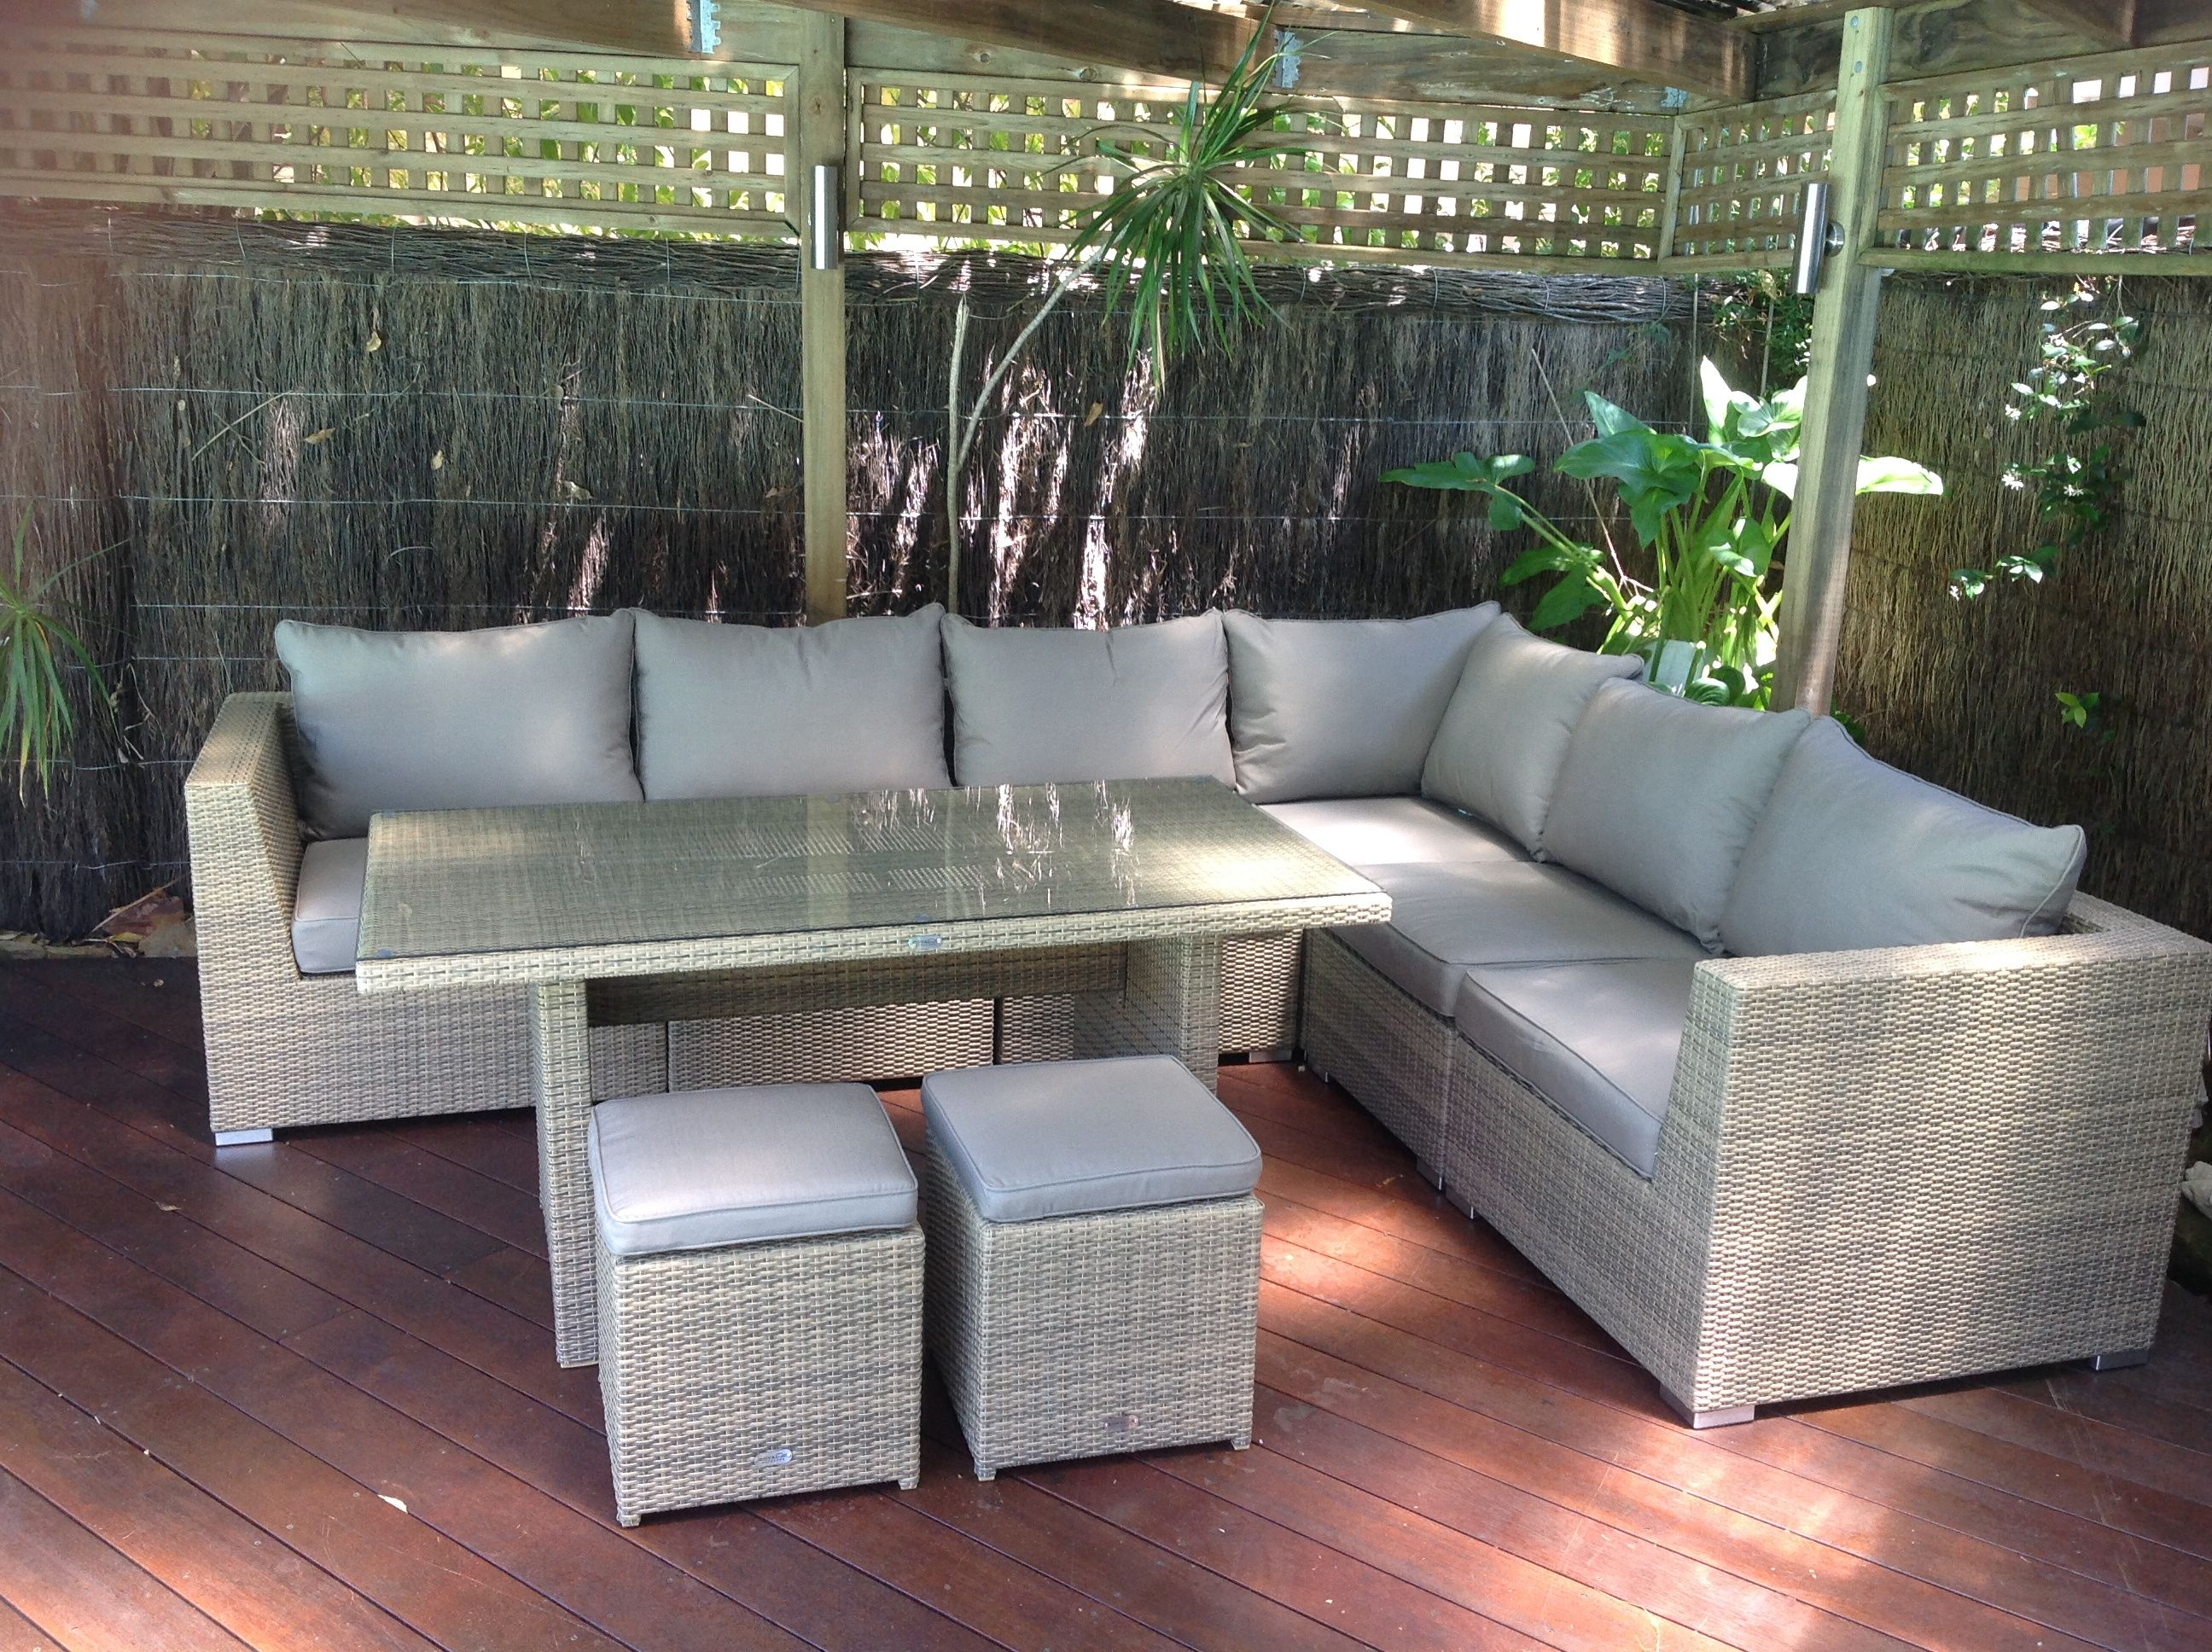 kitchen full patio size garden wood chairs outdoor furniture of rustic materials and recommended log lounge cupboard